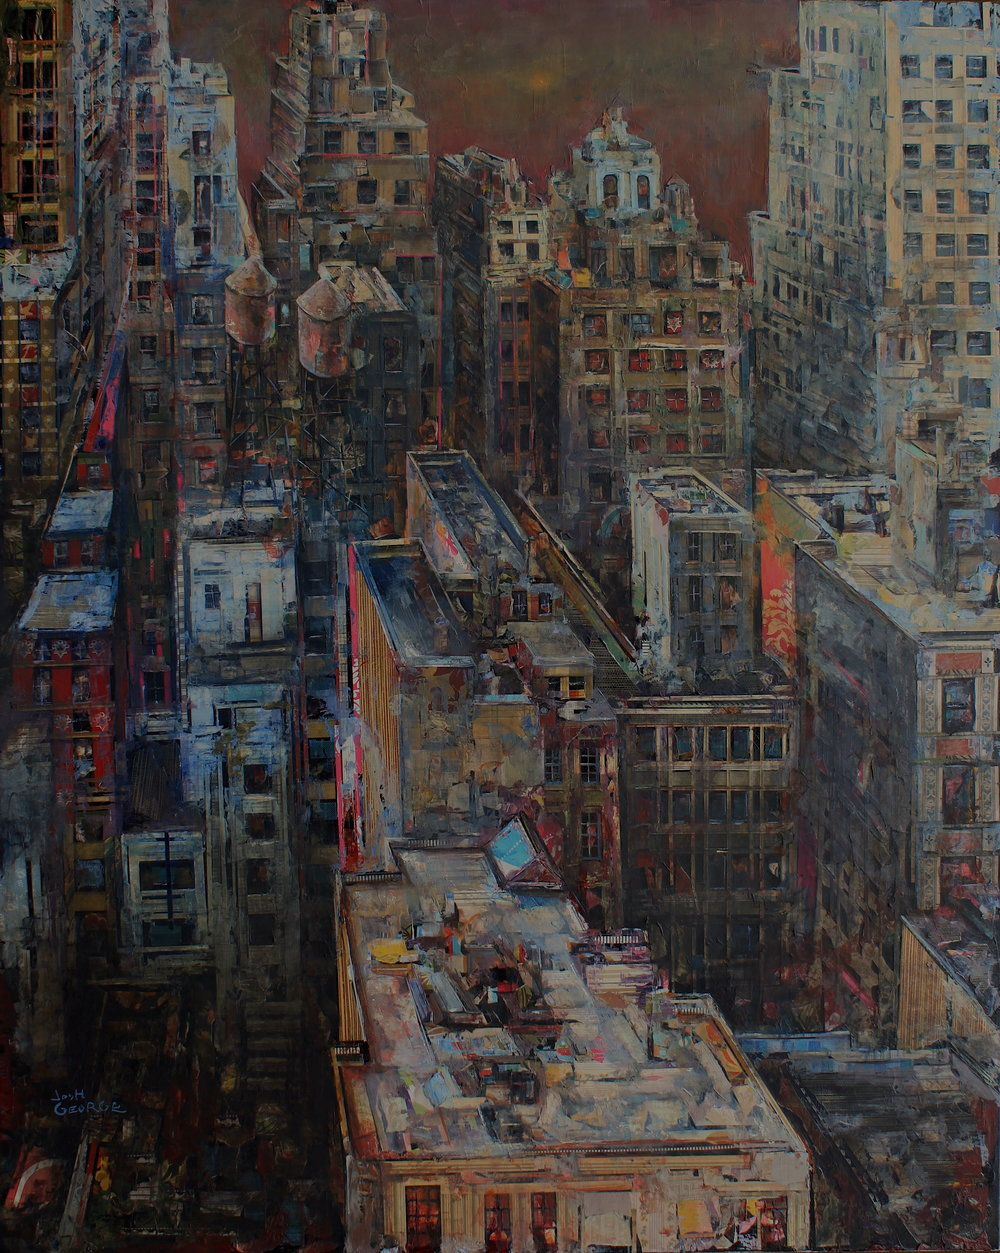 JOSH GEORGE %22Stars Move Aside%22 48%22 x 60%22 mixed media on canvas $7000 .JPG